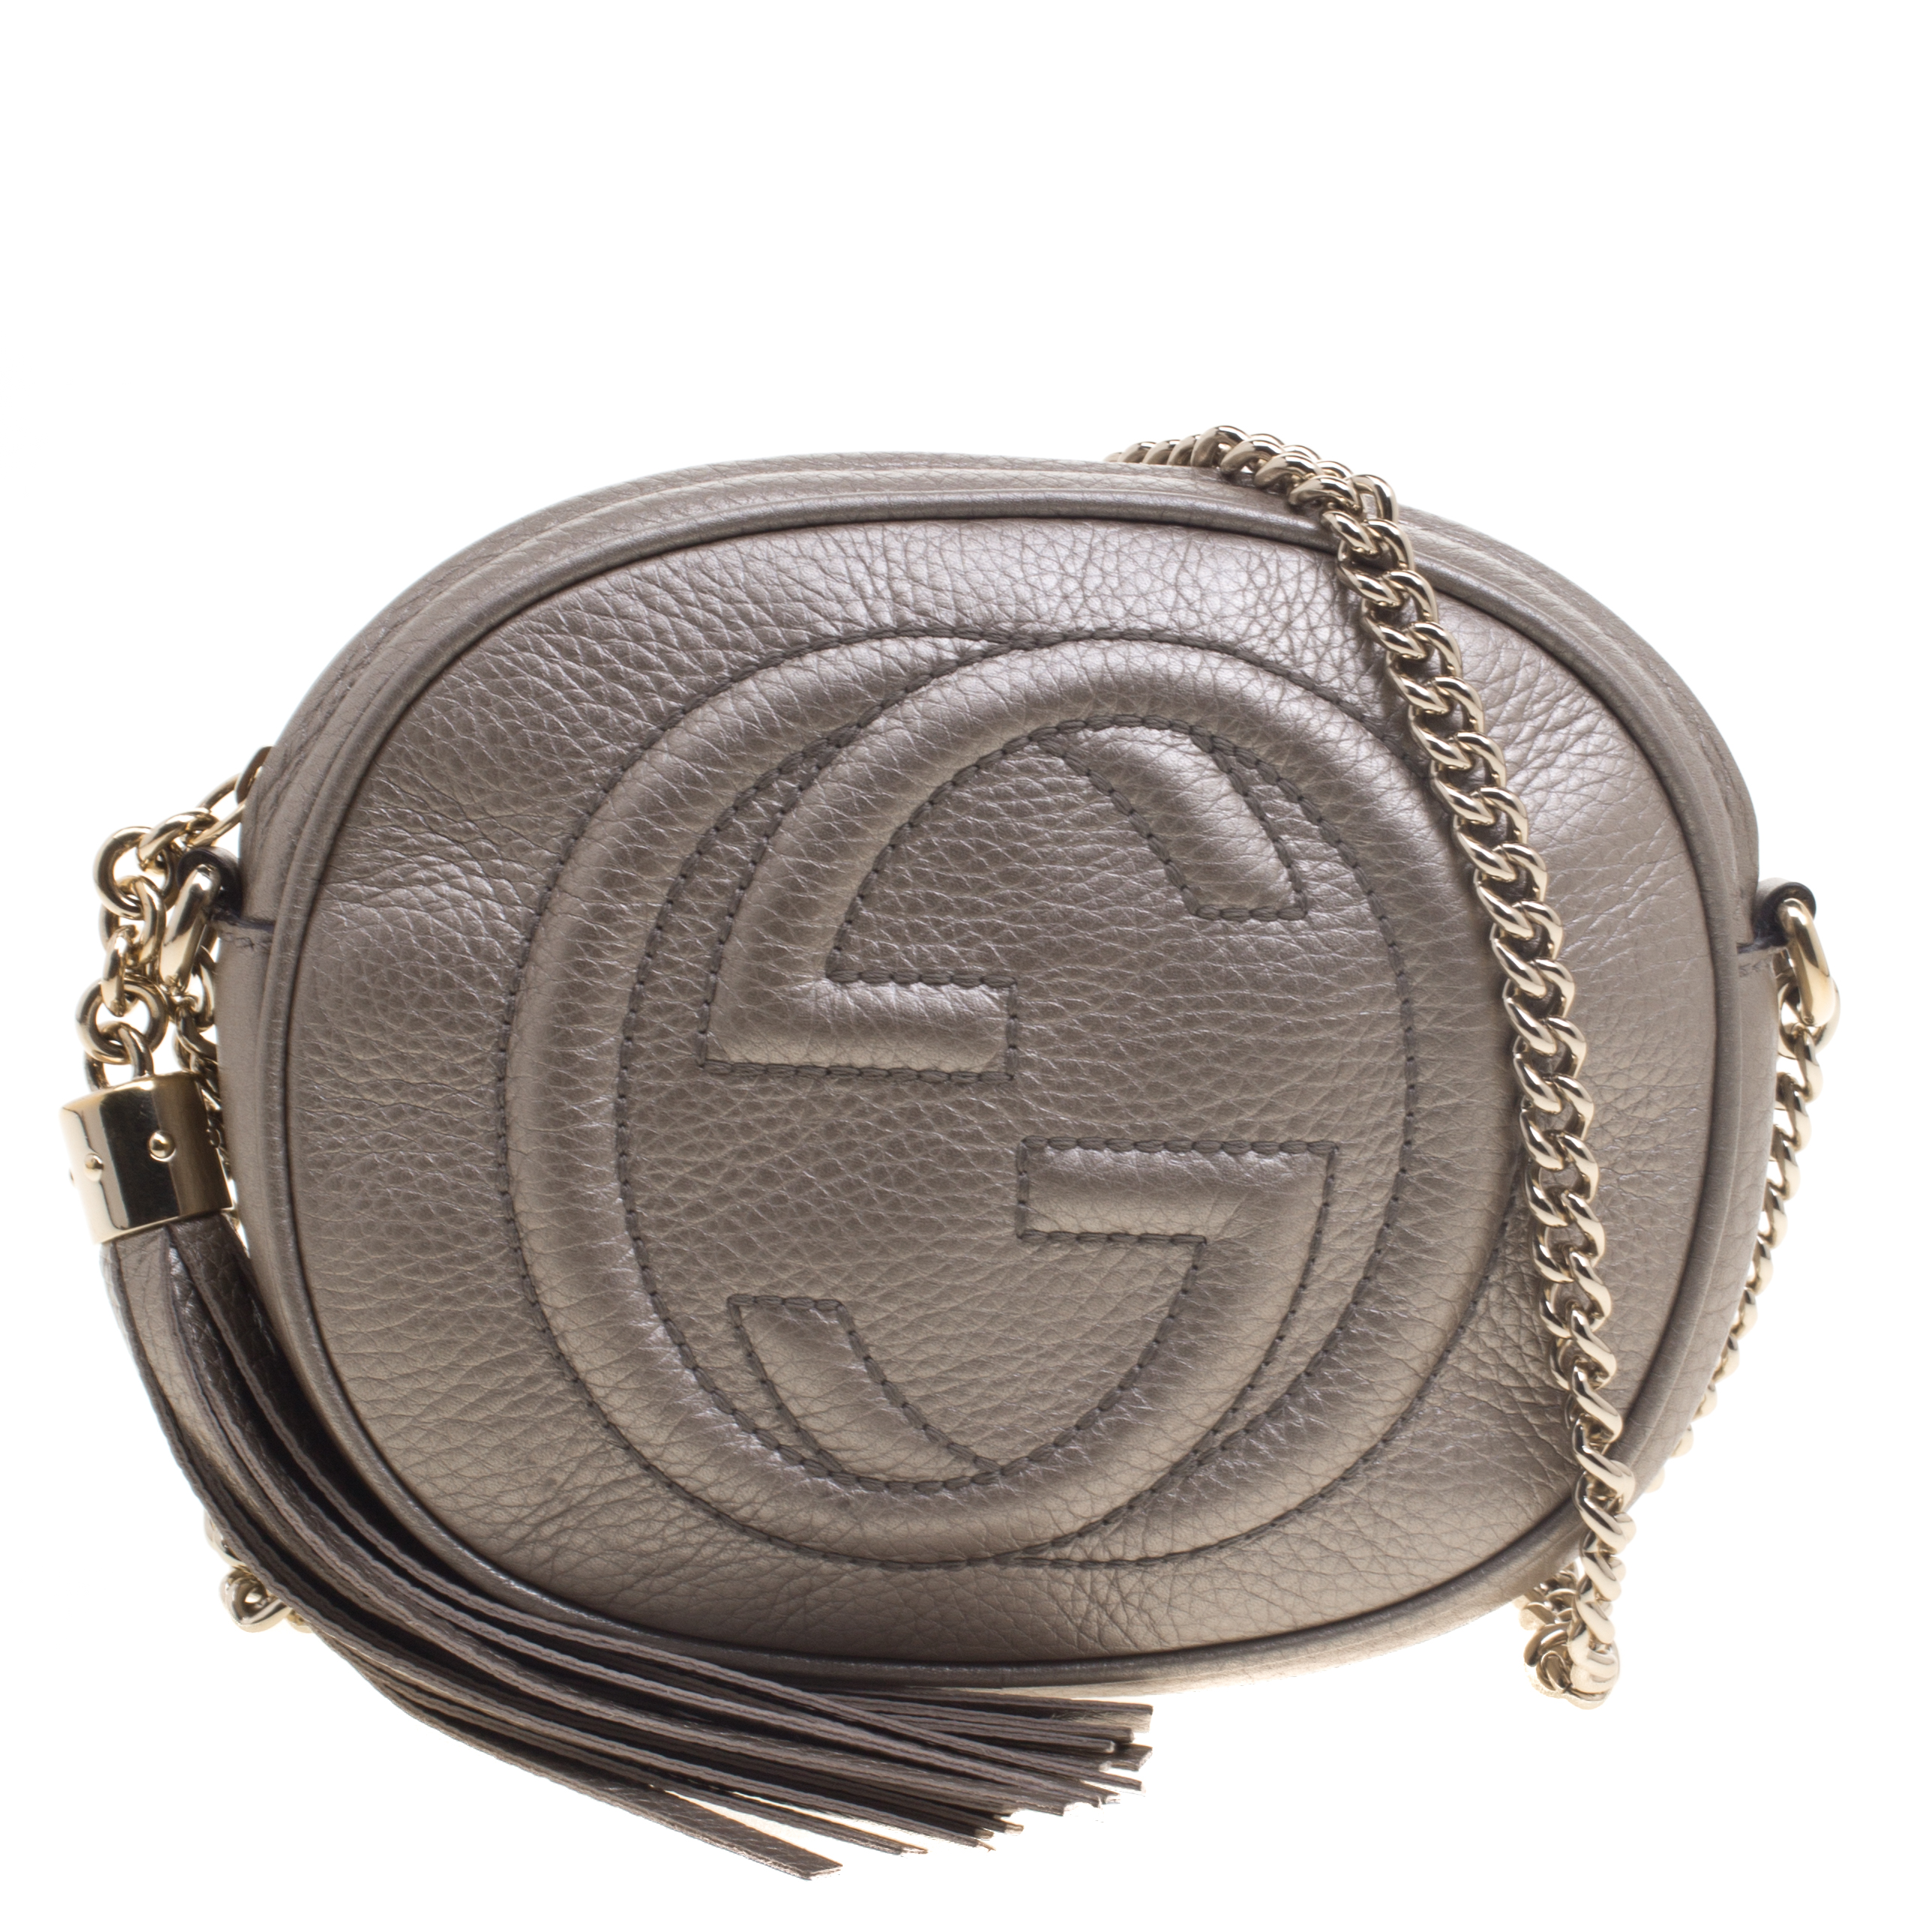 5c05a95dfcca Buy Gucci Beige Iridescent Leather Mini Soho Disco Chain Shoulder ...